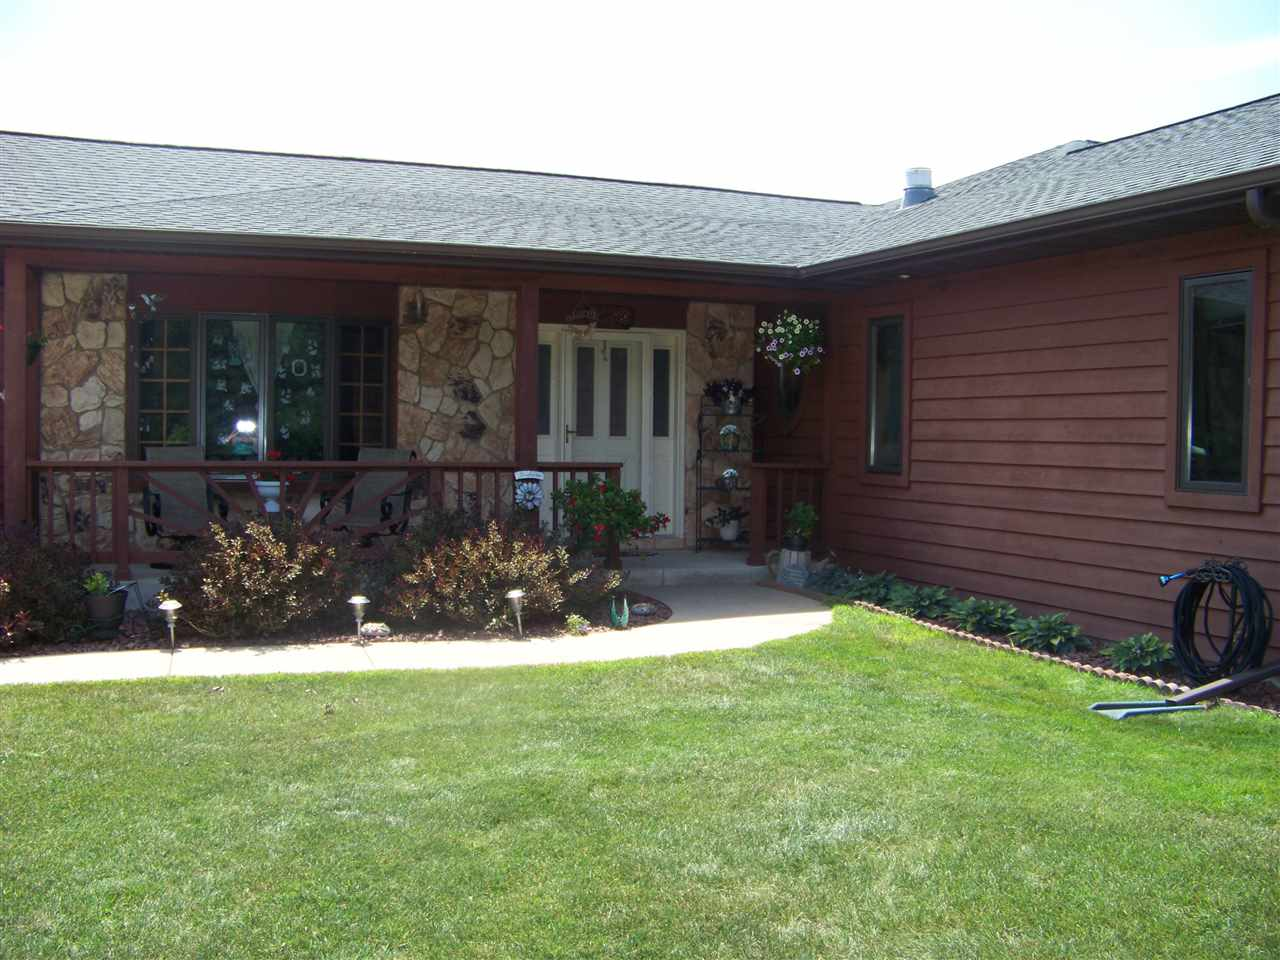 W8035 28TH ST, Clearfield, WI 53950